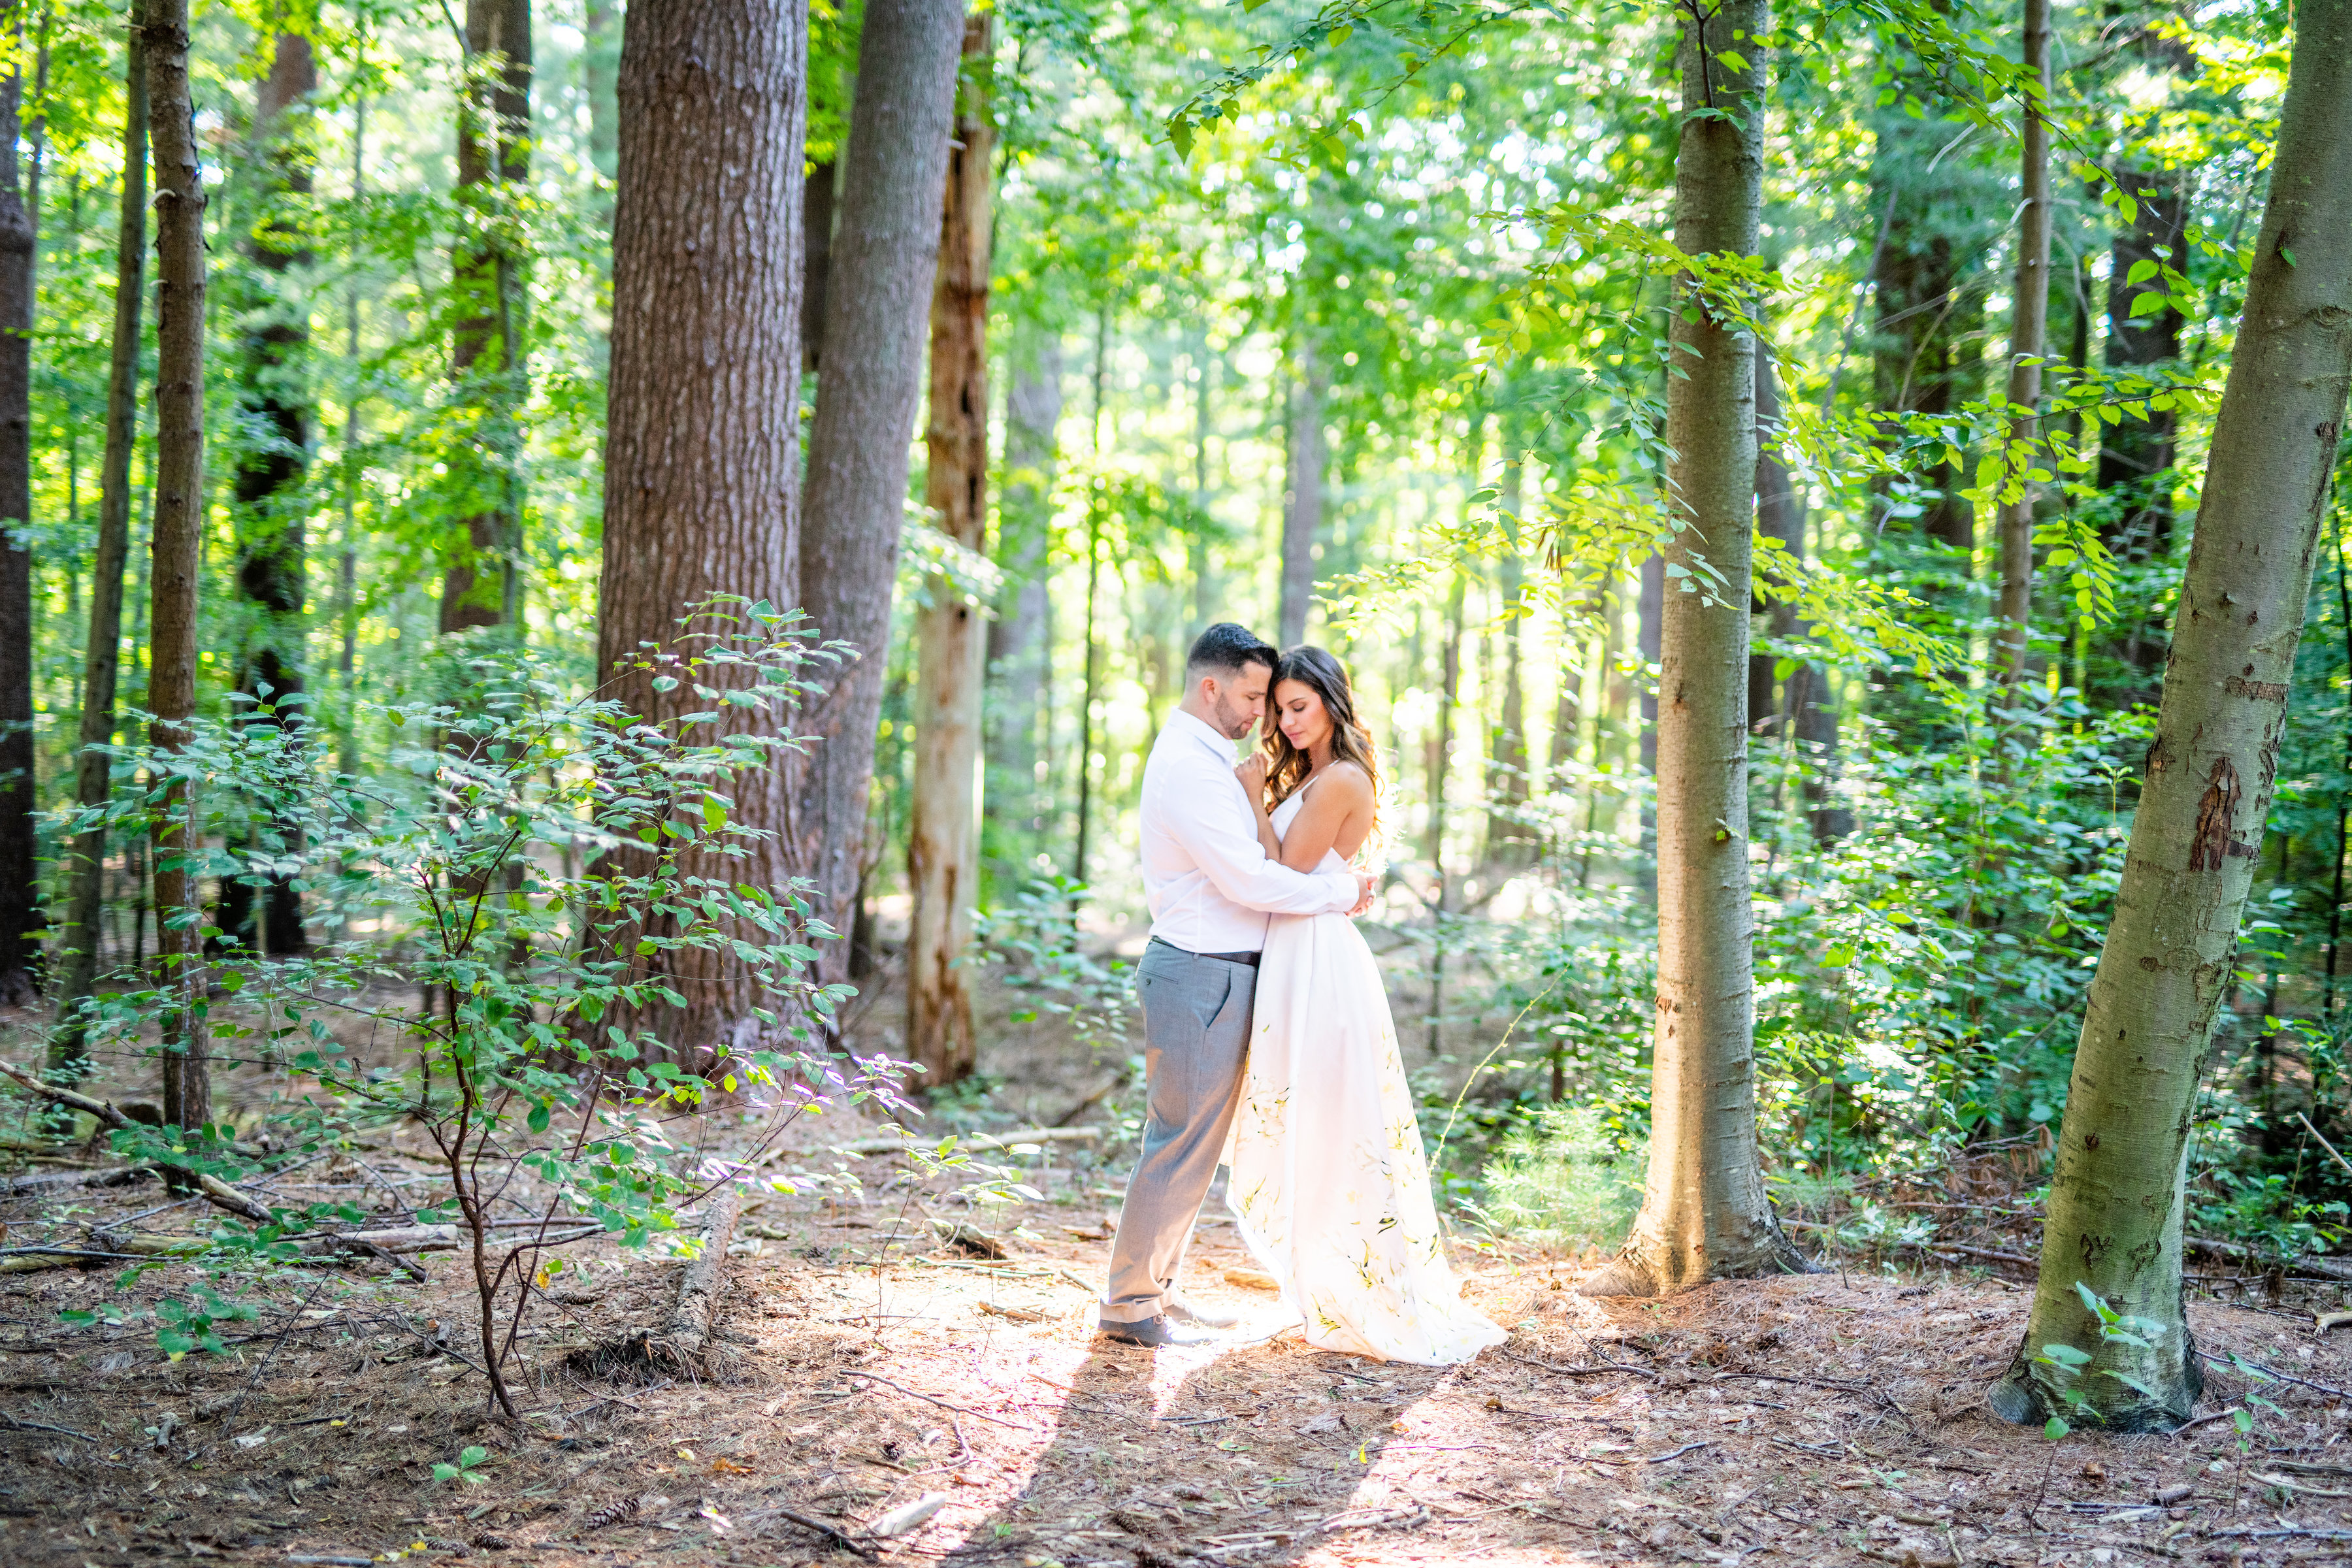 Prosser Pines Engagement Shoot | Long Island Wedding Photographer | Hamptons Wedding Photographer21